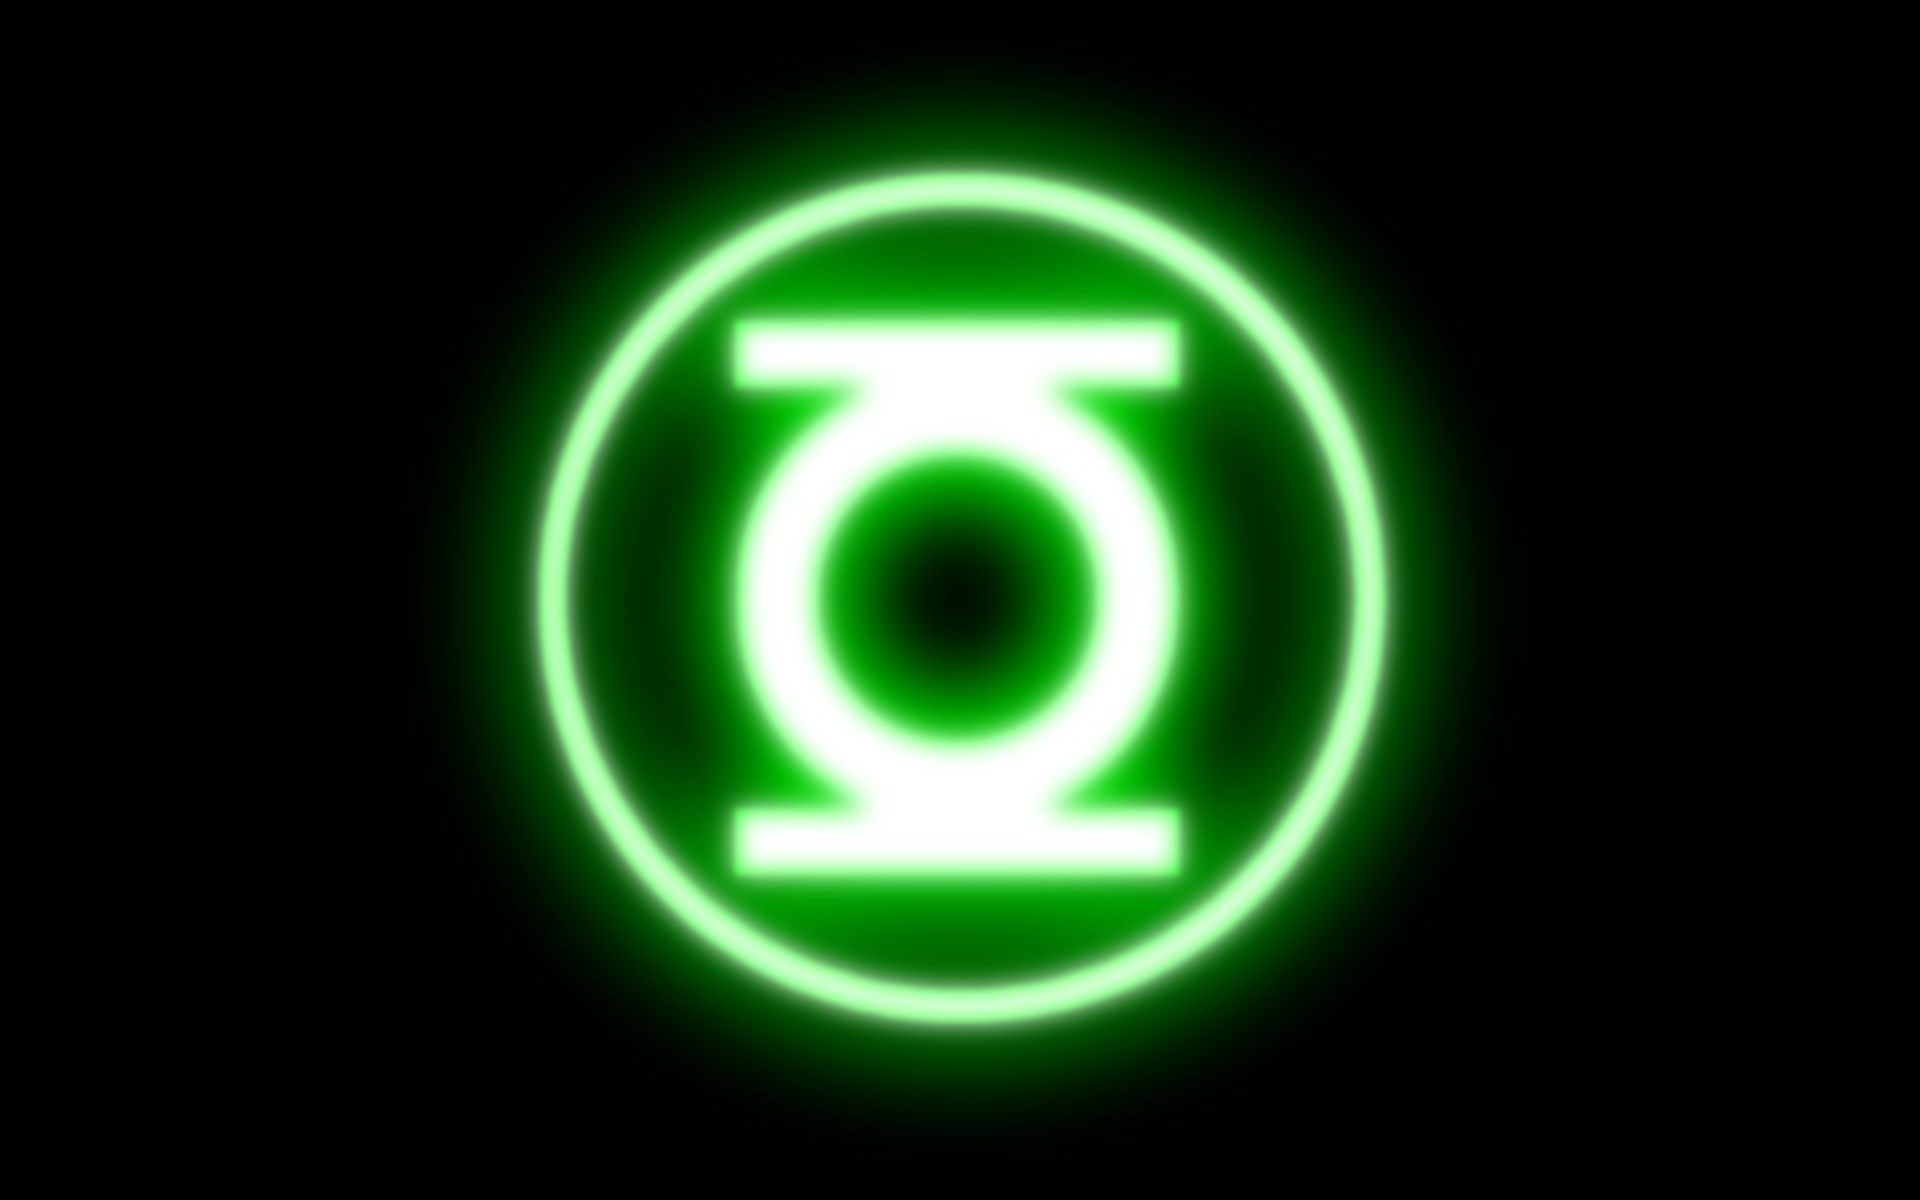 green lantern pic: full hd pictures - green lantern category